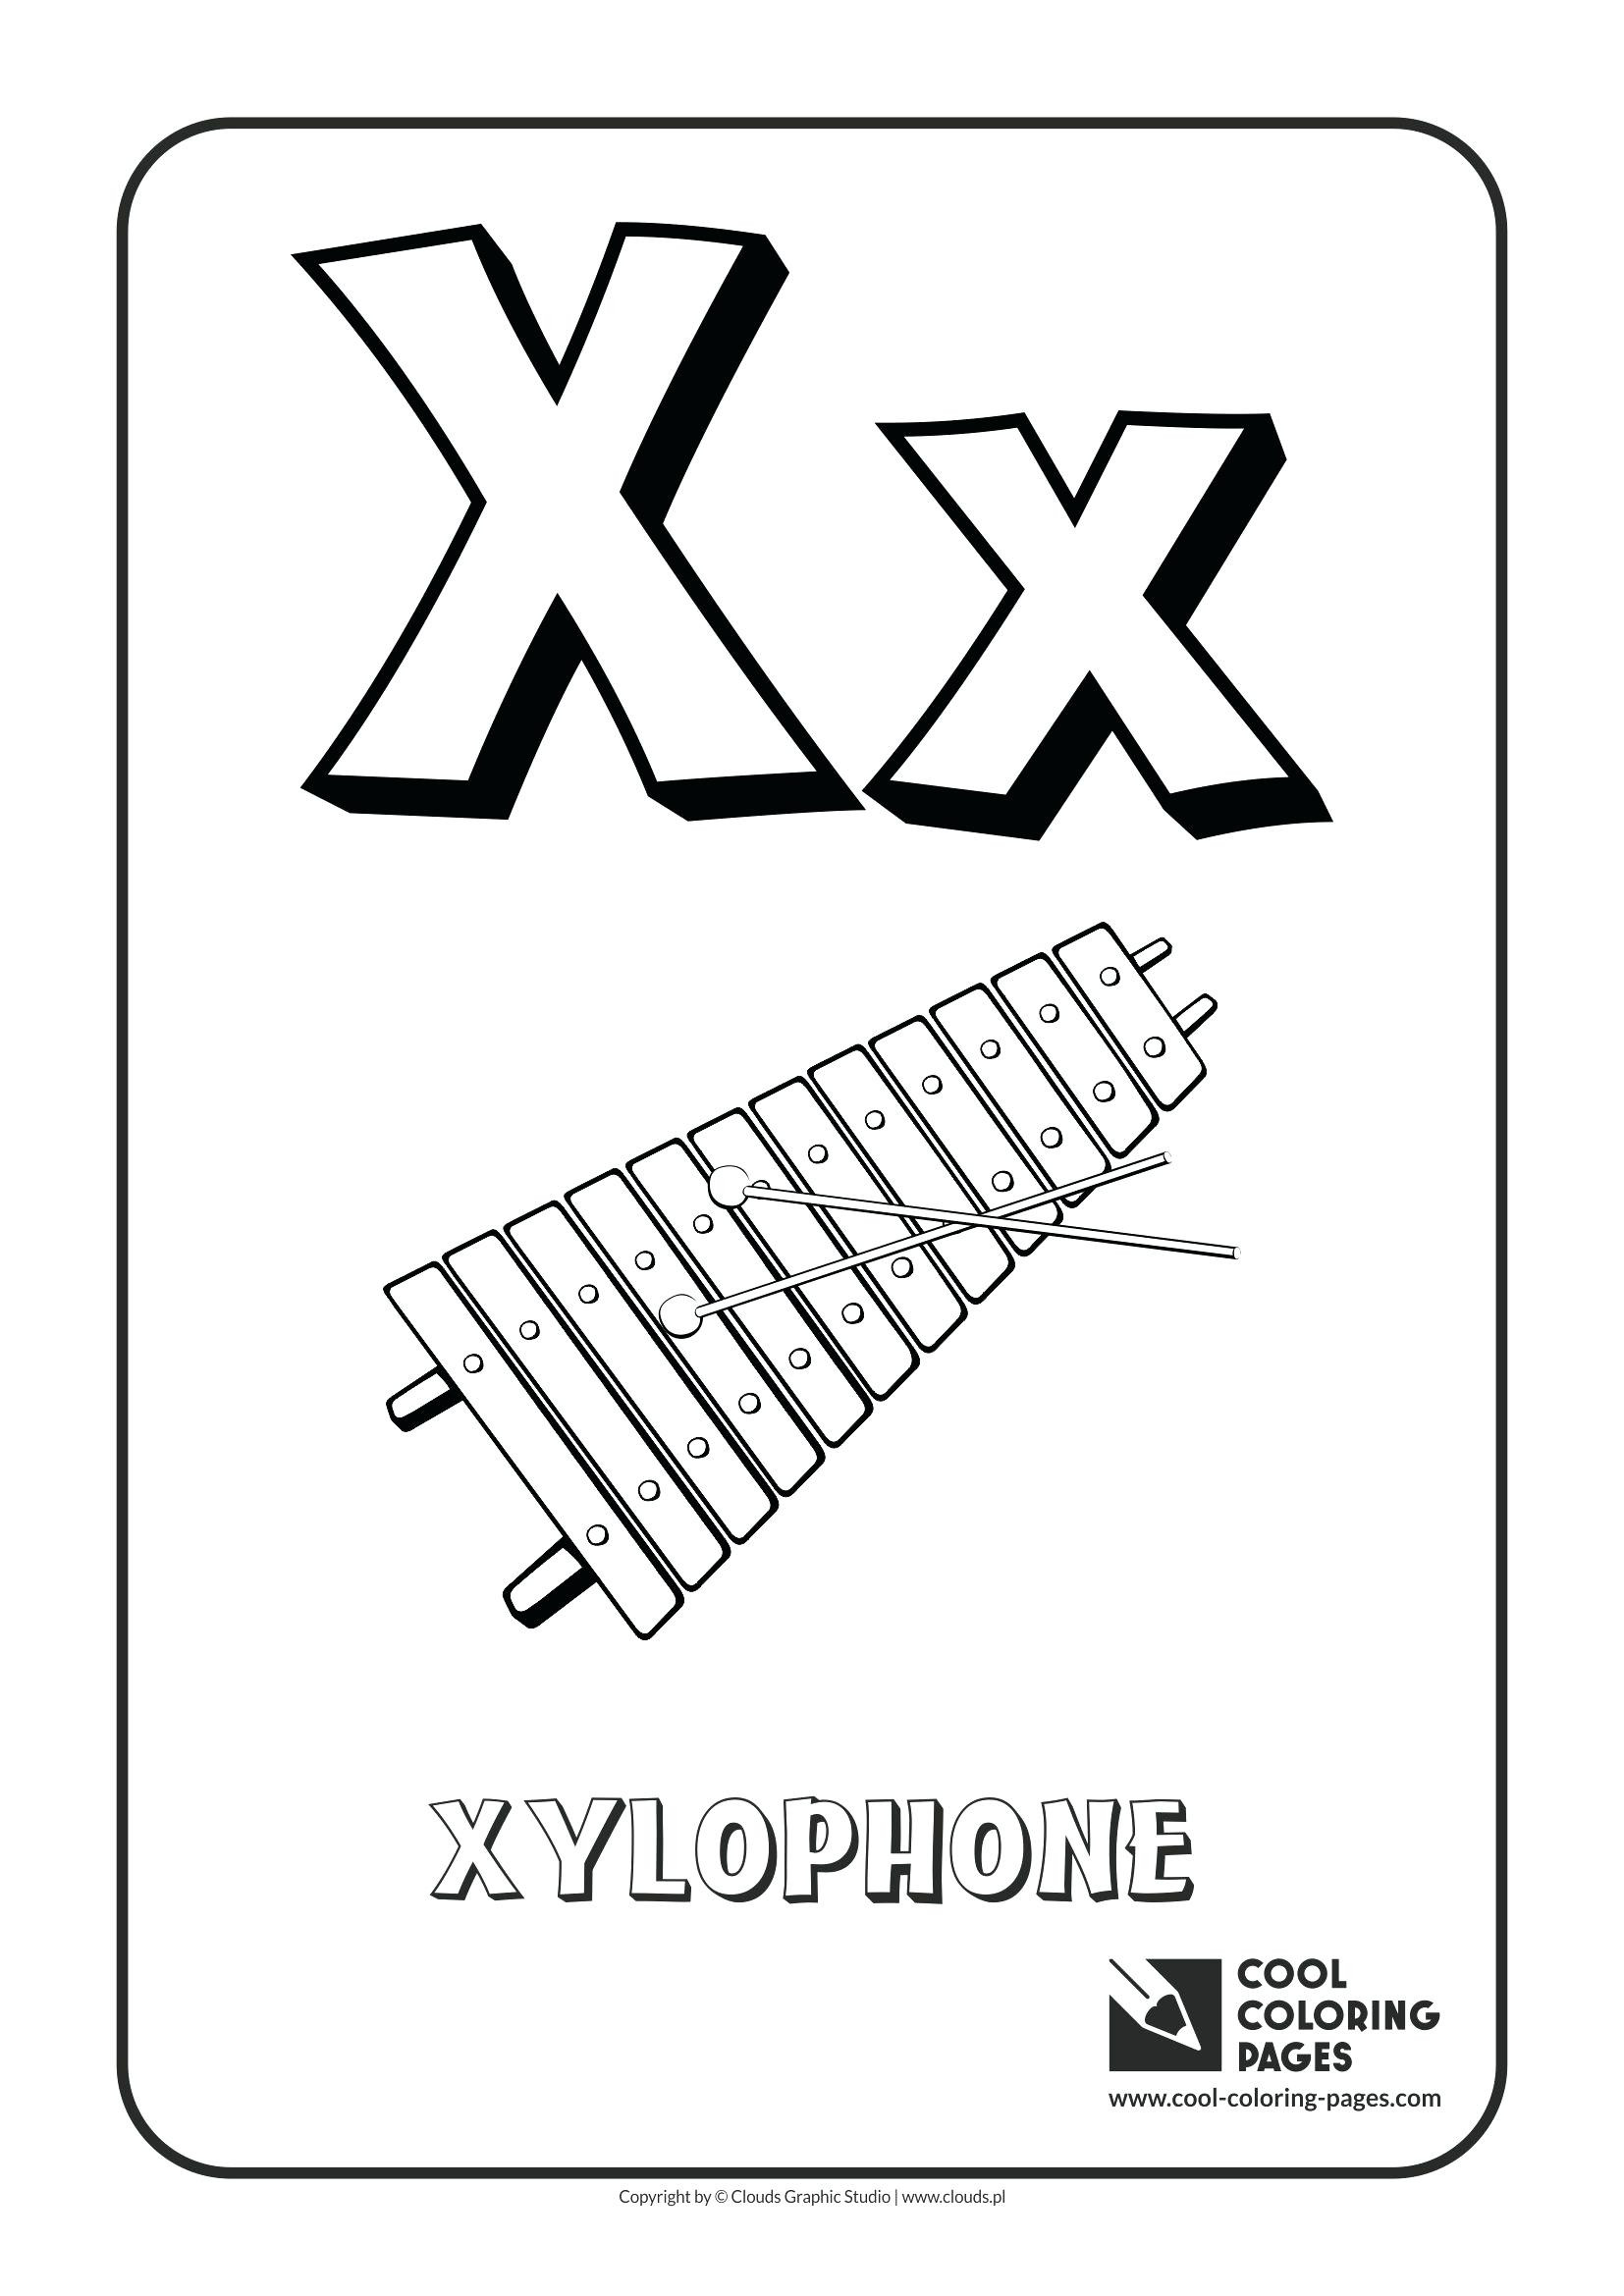 Xylophone Coloring Page At Getcolorings